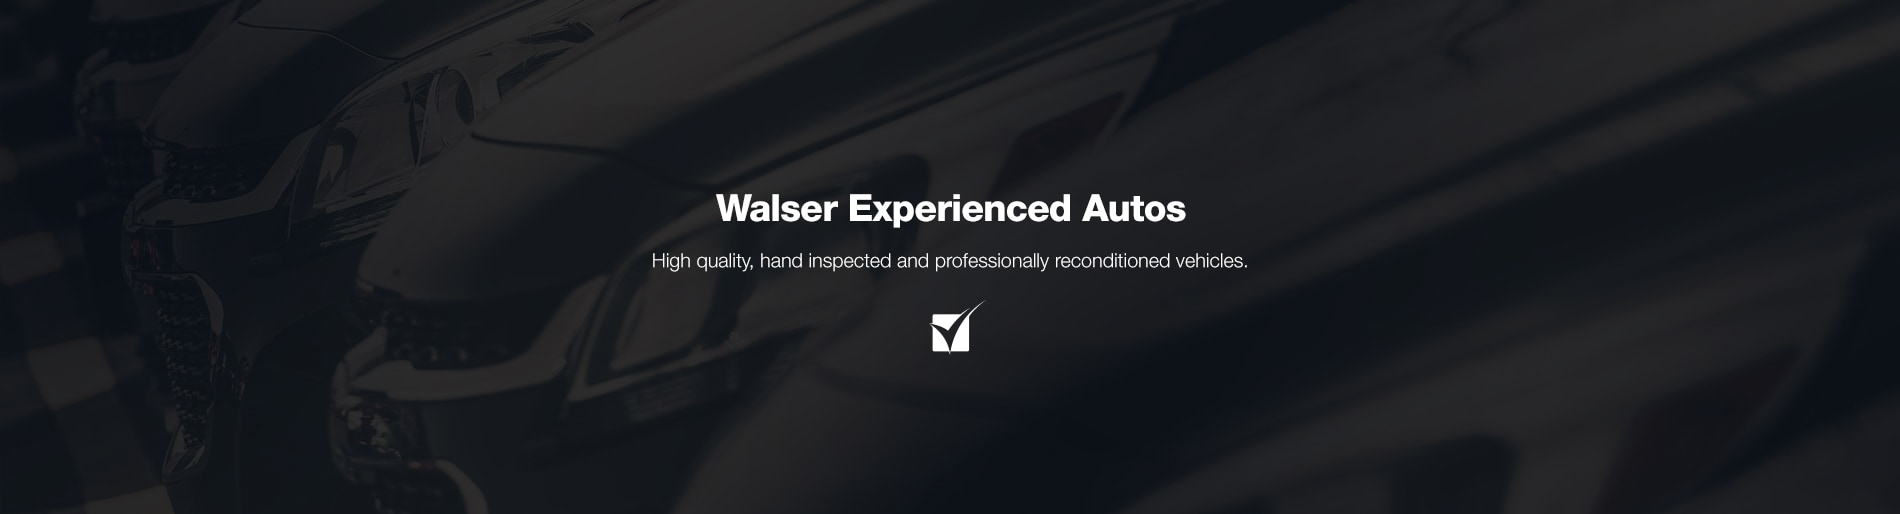 Walser Automotive Group | New dealership in Bloomington, MN 55437